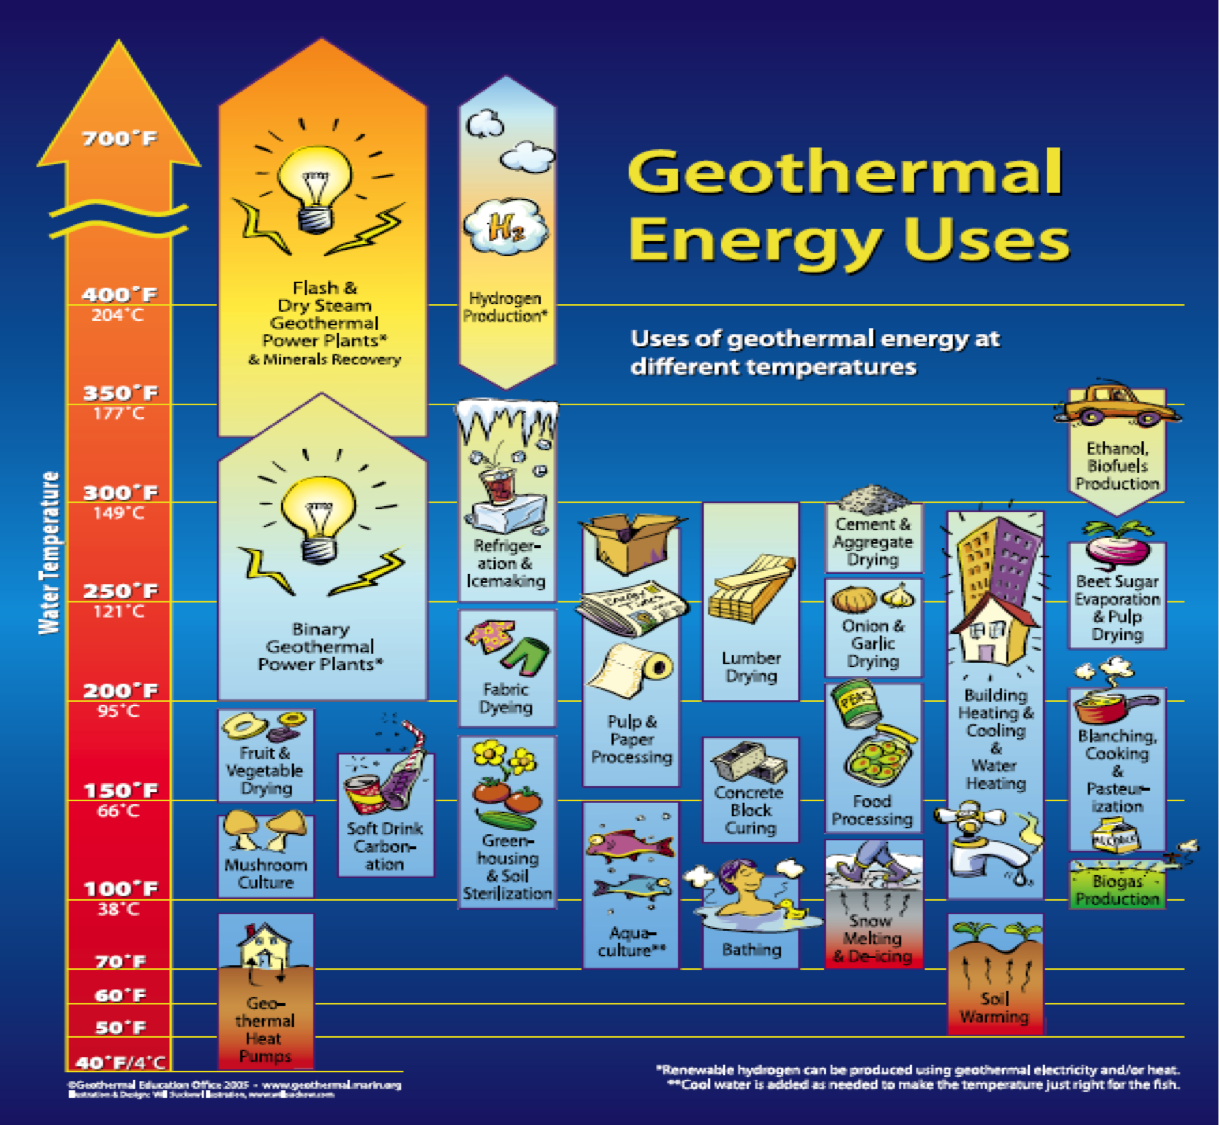 How To Use Geothermal Energy | Life Free Energy